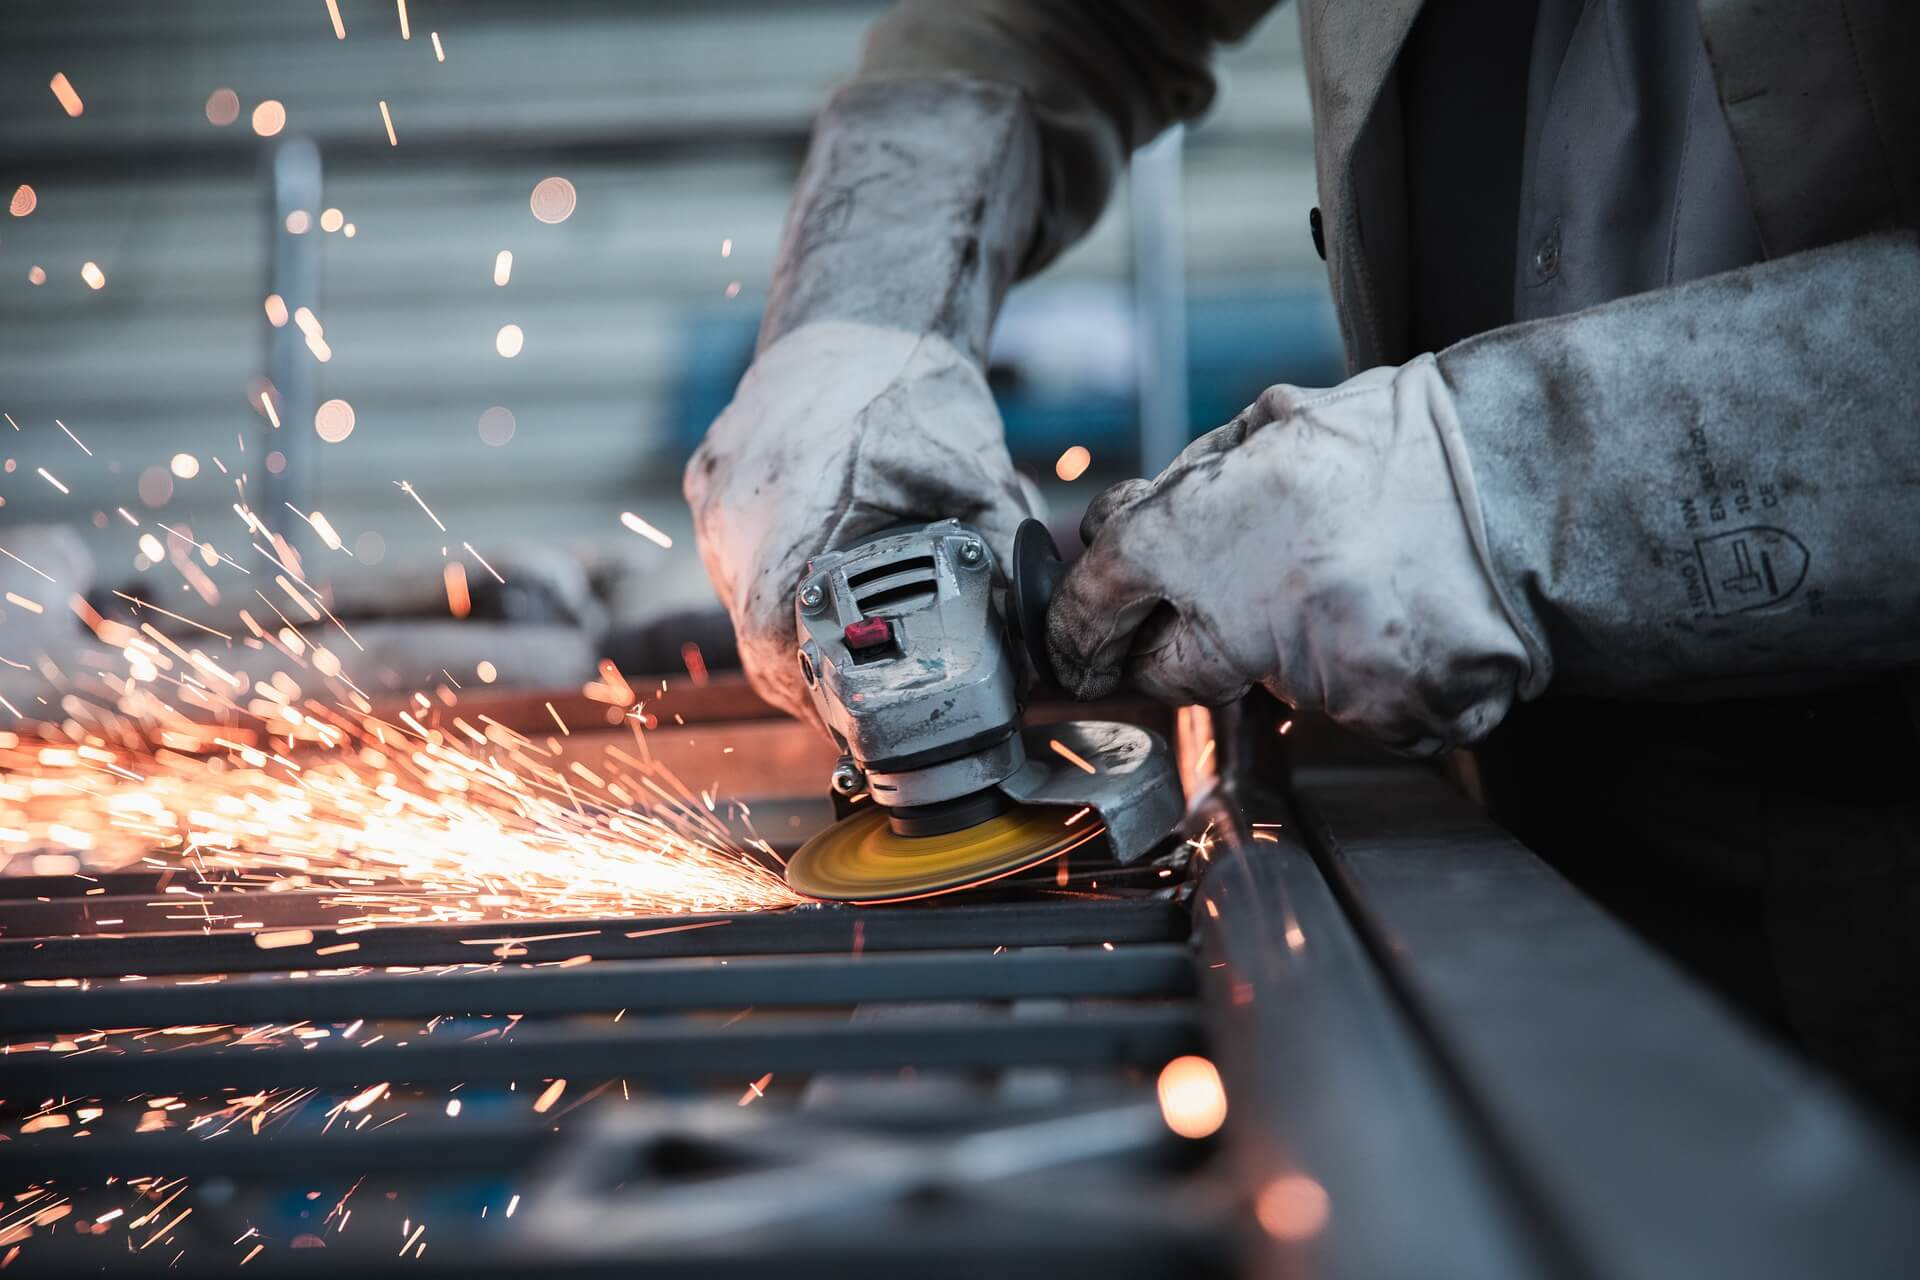 Worker with gloves sanding a metal structure and producing sparks